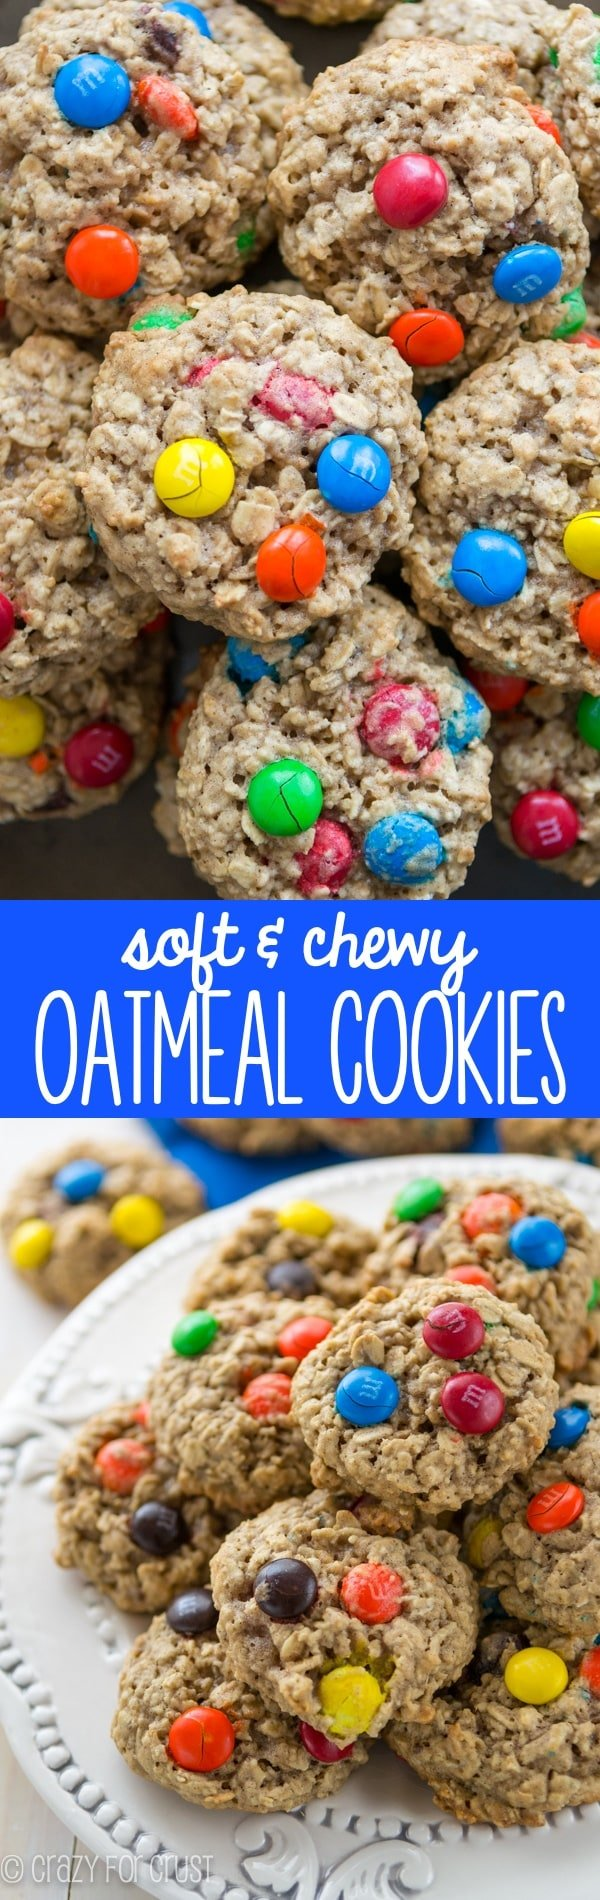 My favorite soft & chewy Oatmeal Cookies! This recipe is easy super soft and chewy. We love them with M&Ms inside!